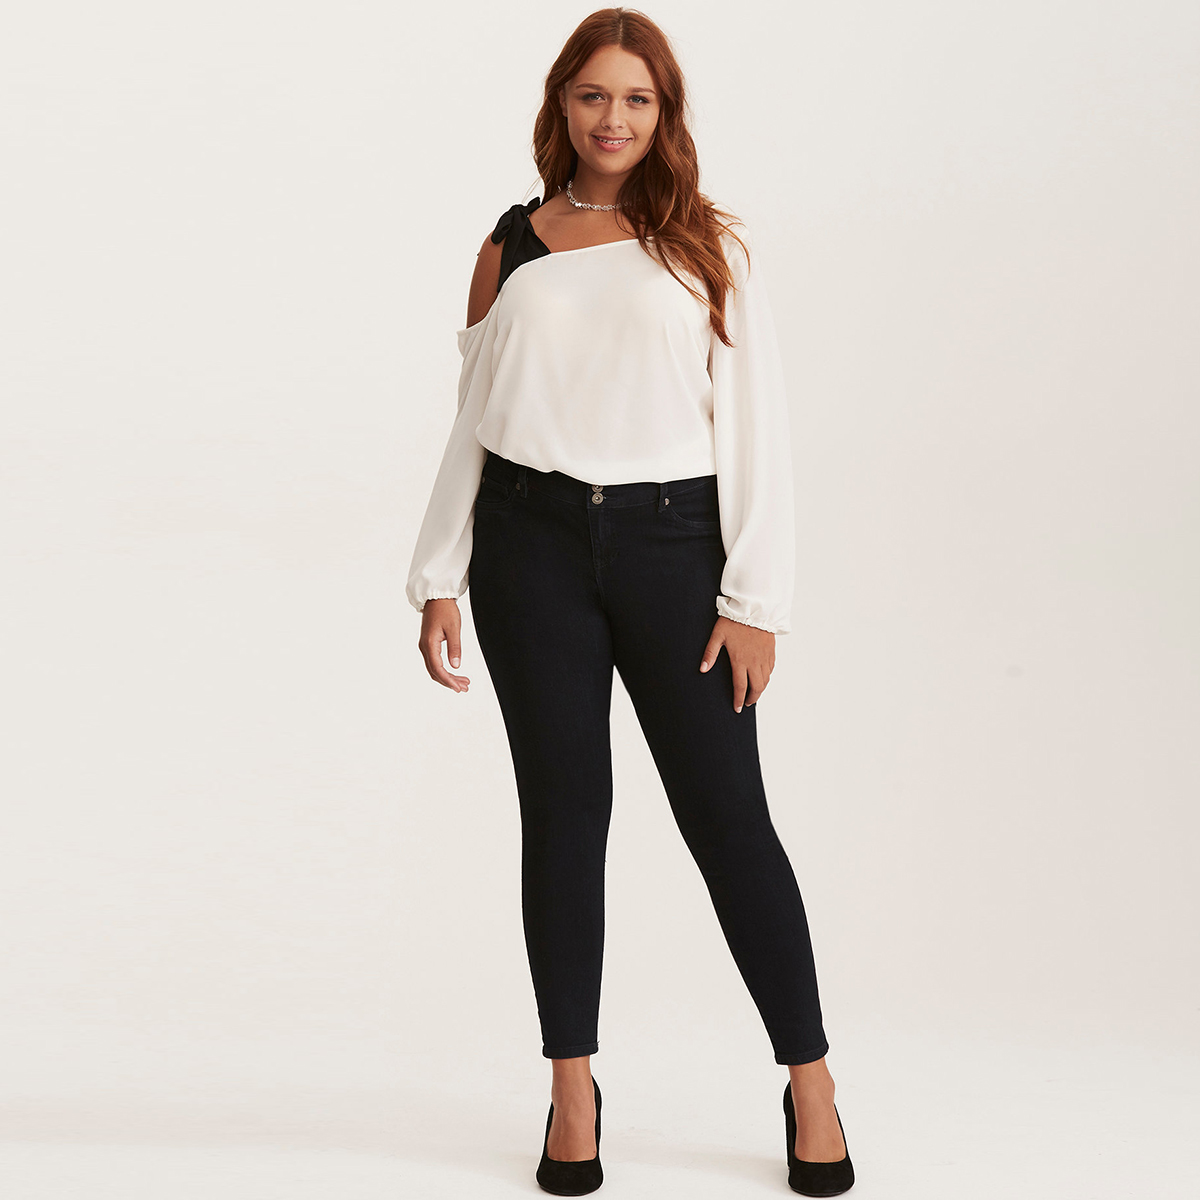 MCO 2018 Spring Sexy Tie One Shoulder Plus Size Women Top Fashion Office Ladies Oversized Blouse Basic OL White Tops 5xl 6xl 7xl 3